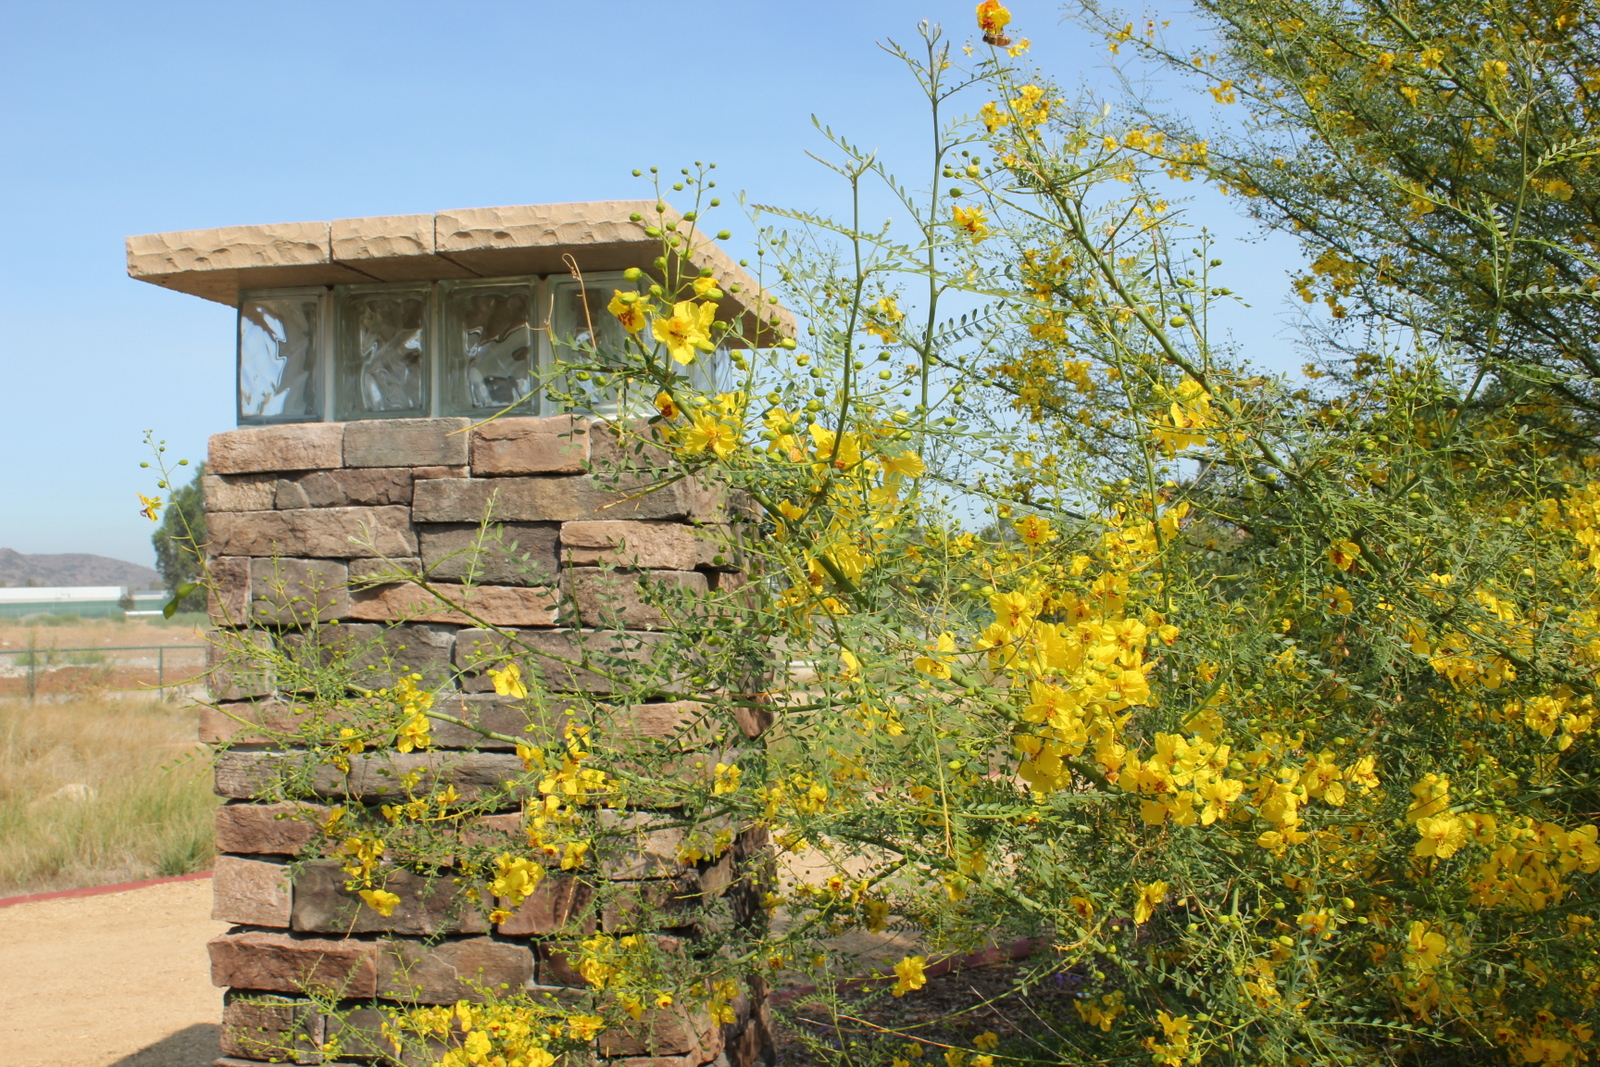 Blue Palo Verde in bloom at the entrance of the ranch vignette.